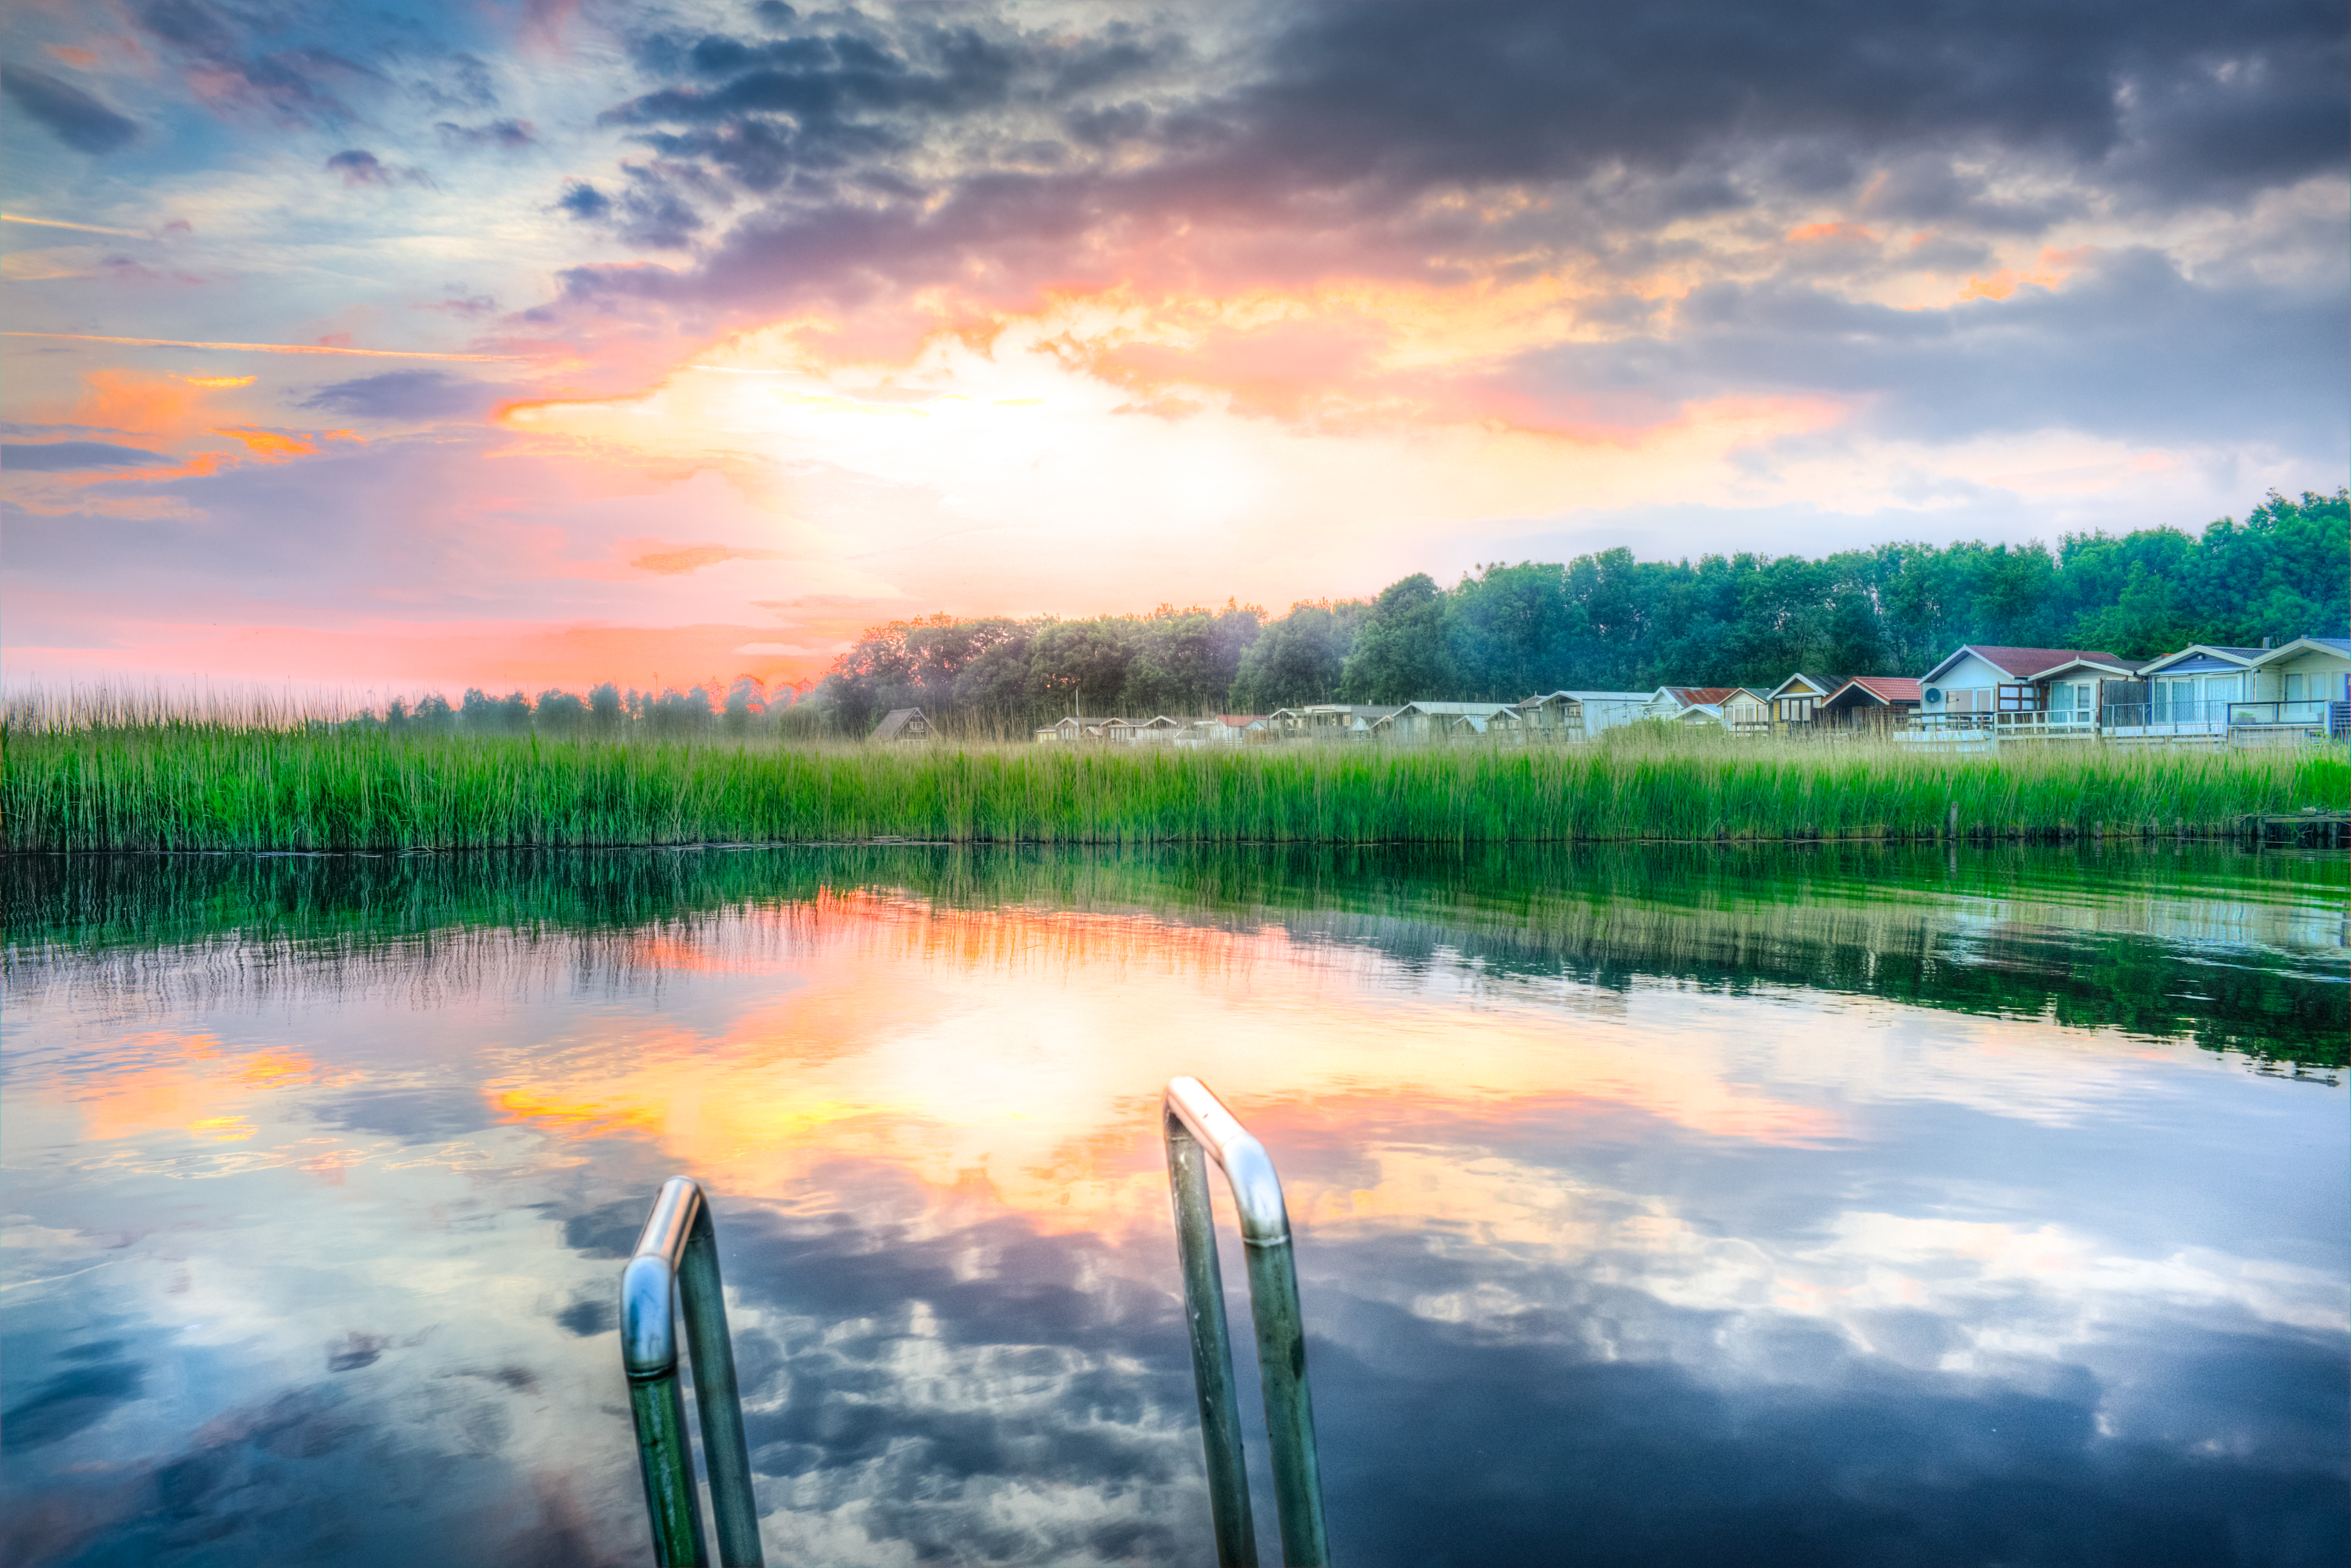 Panoramic Photography of Lake during Sunset